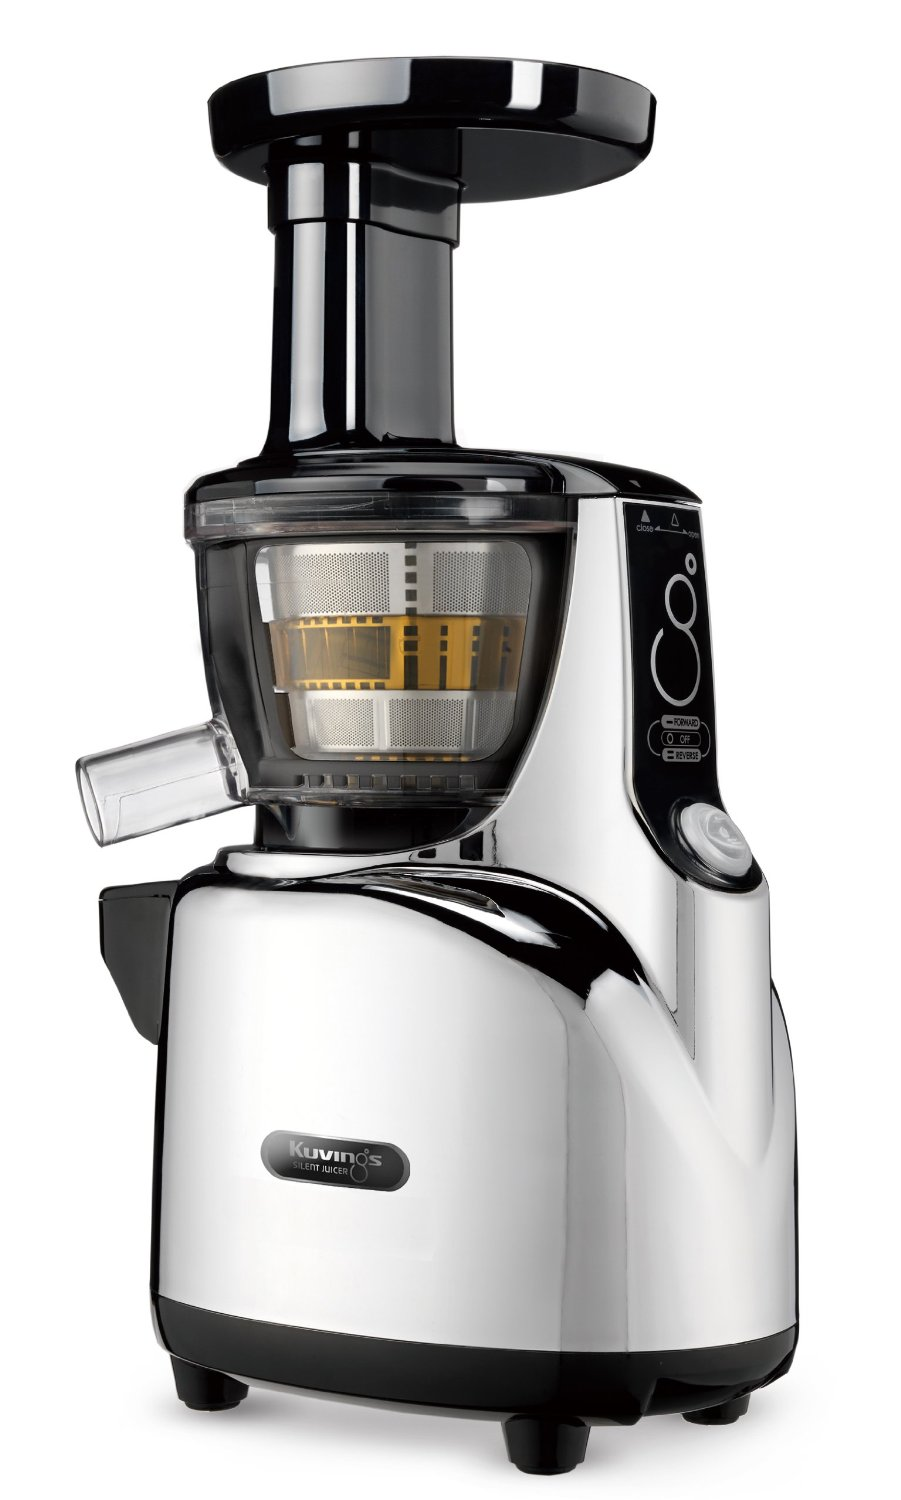 Kuvings Silent Slow Juicer Review : 5 Best Kuvings Juicer Reviews UPDATED: 2018 The Home Savant